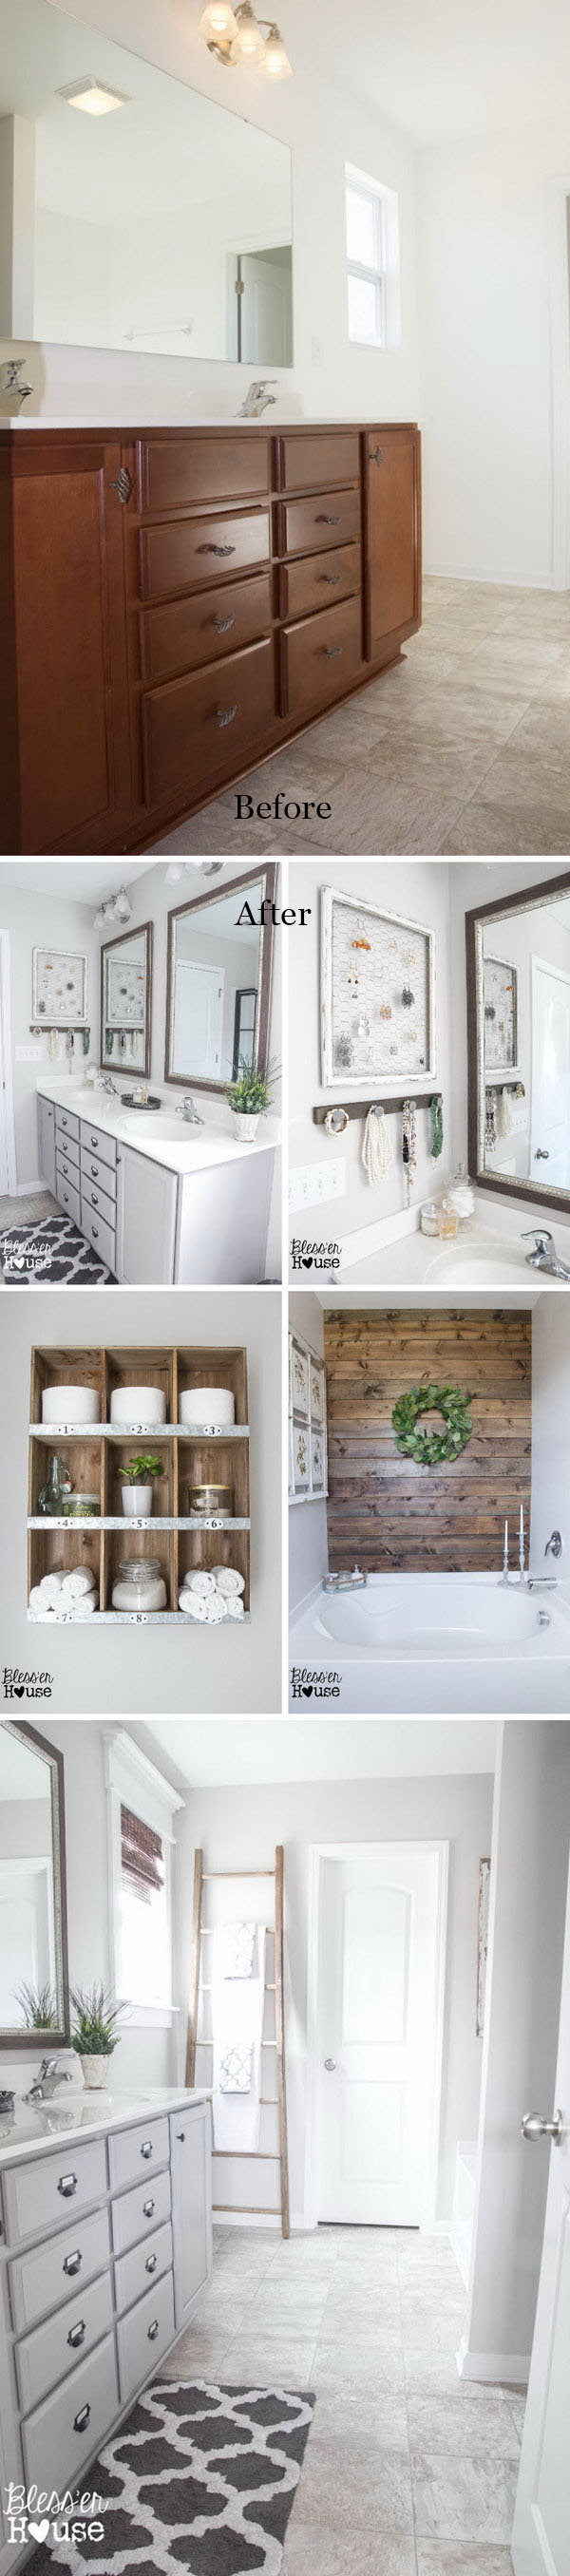 Master Bathroom Budget Makeover: Builder Grade to Rustic Industrial.